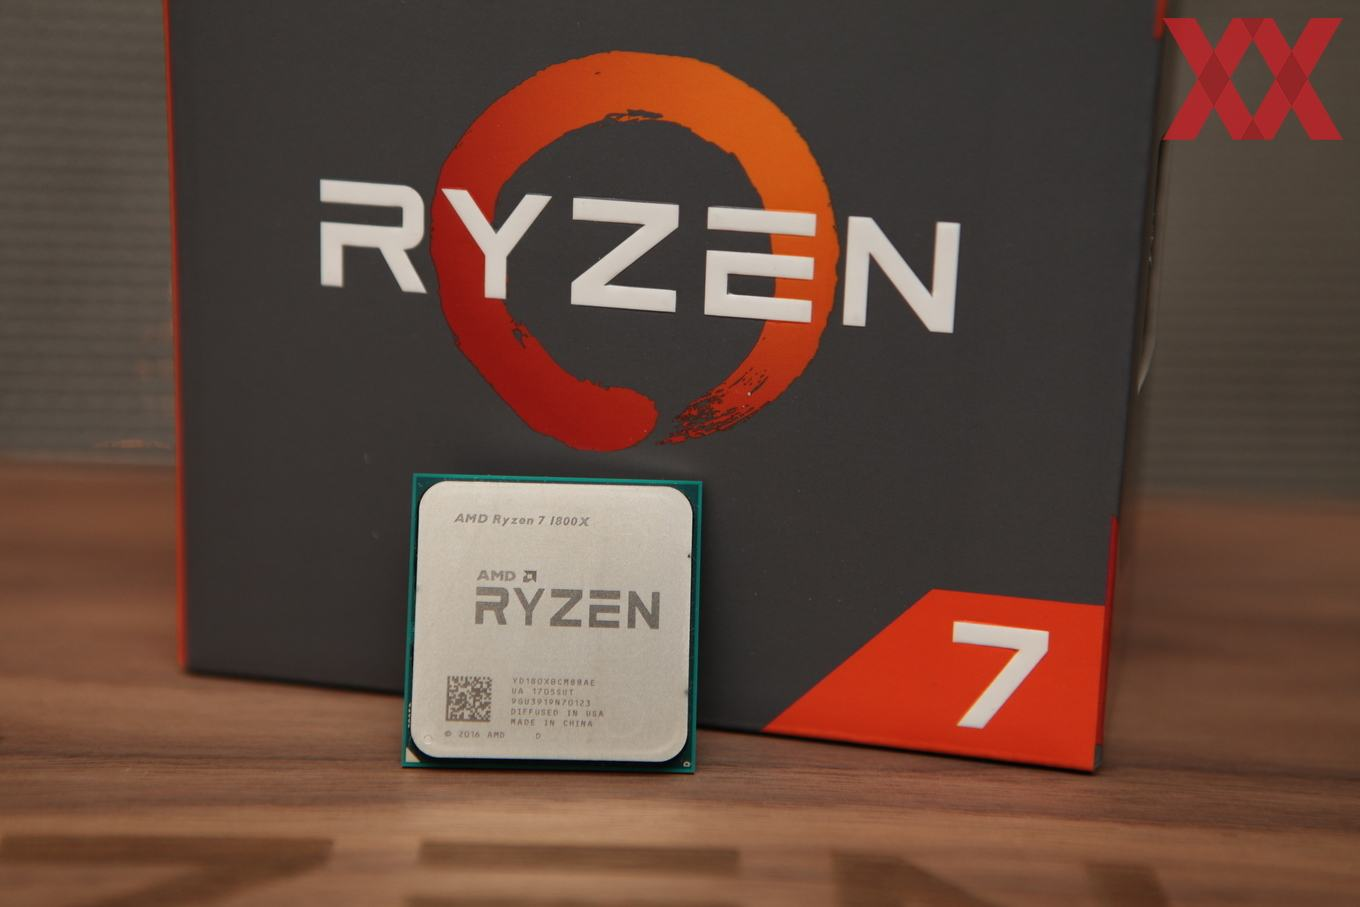 AMD Ryzen 7 1800X 8 Core 16 Thread 4.0GHz Flagship CPU Unboxed